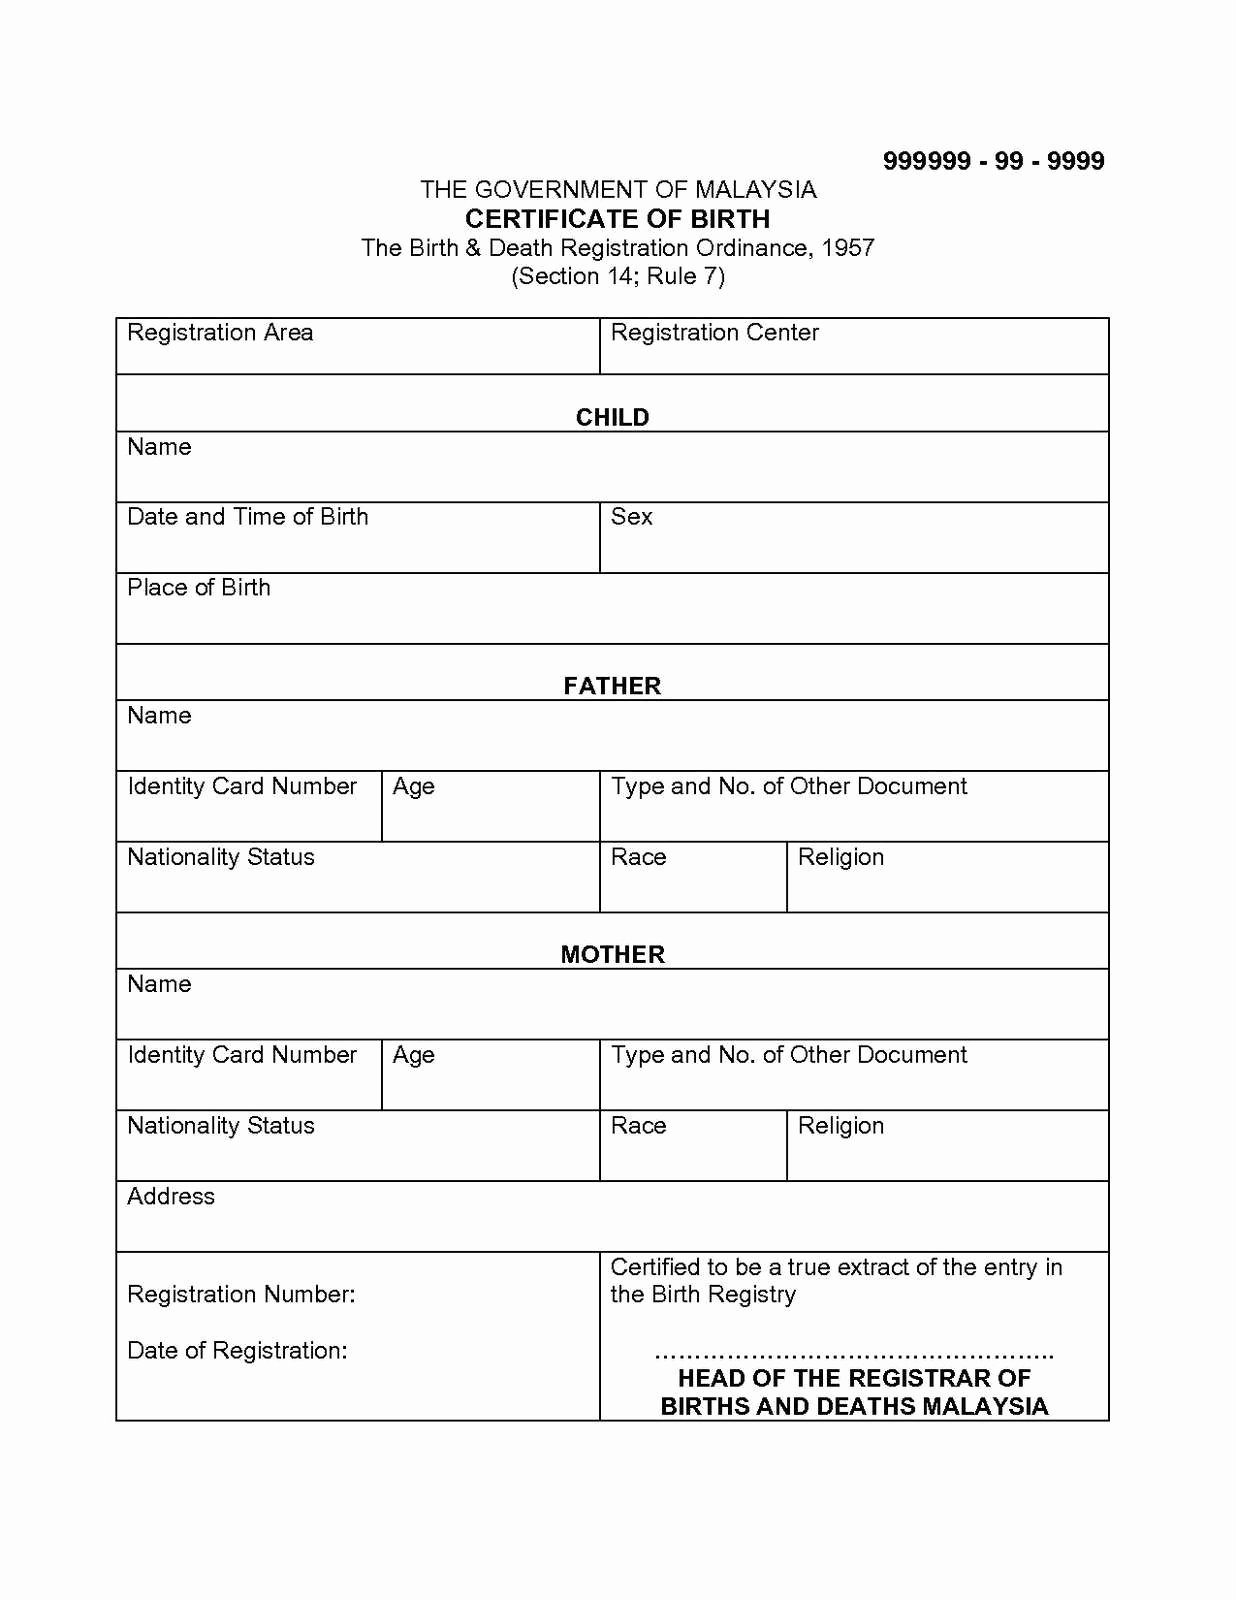 Marriage Certificate Translation Template Spanish to English Awesome 30 Ideal Birth Certificate Translation Template Ue